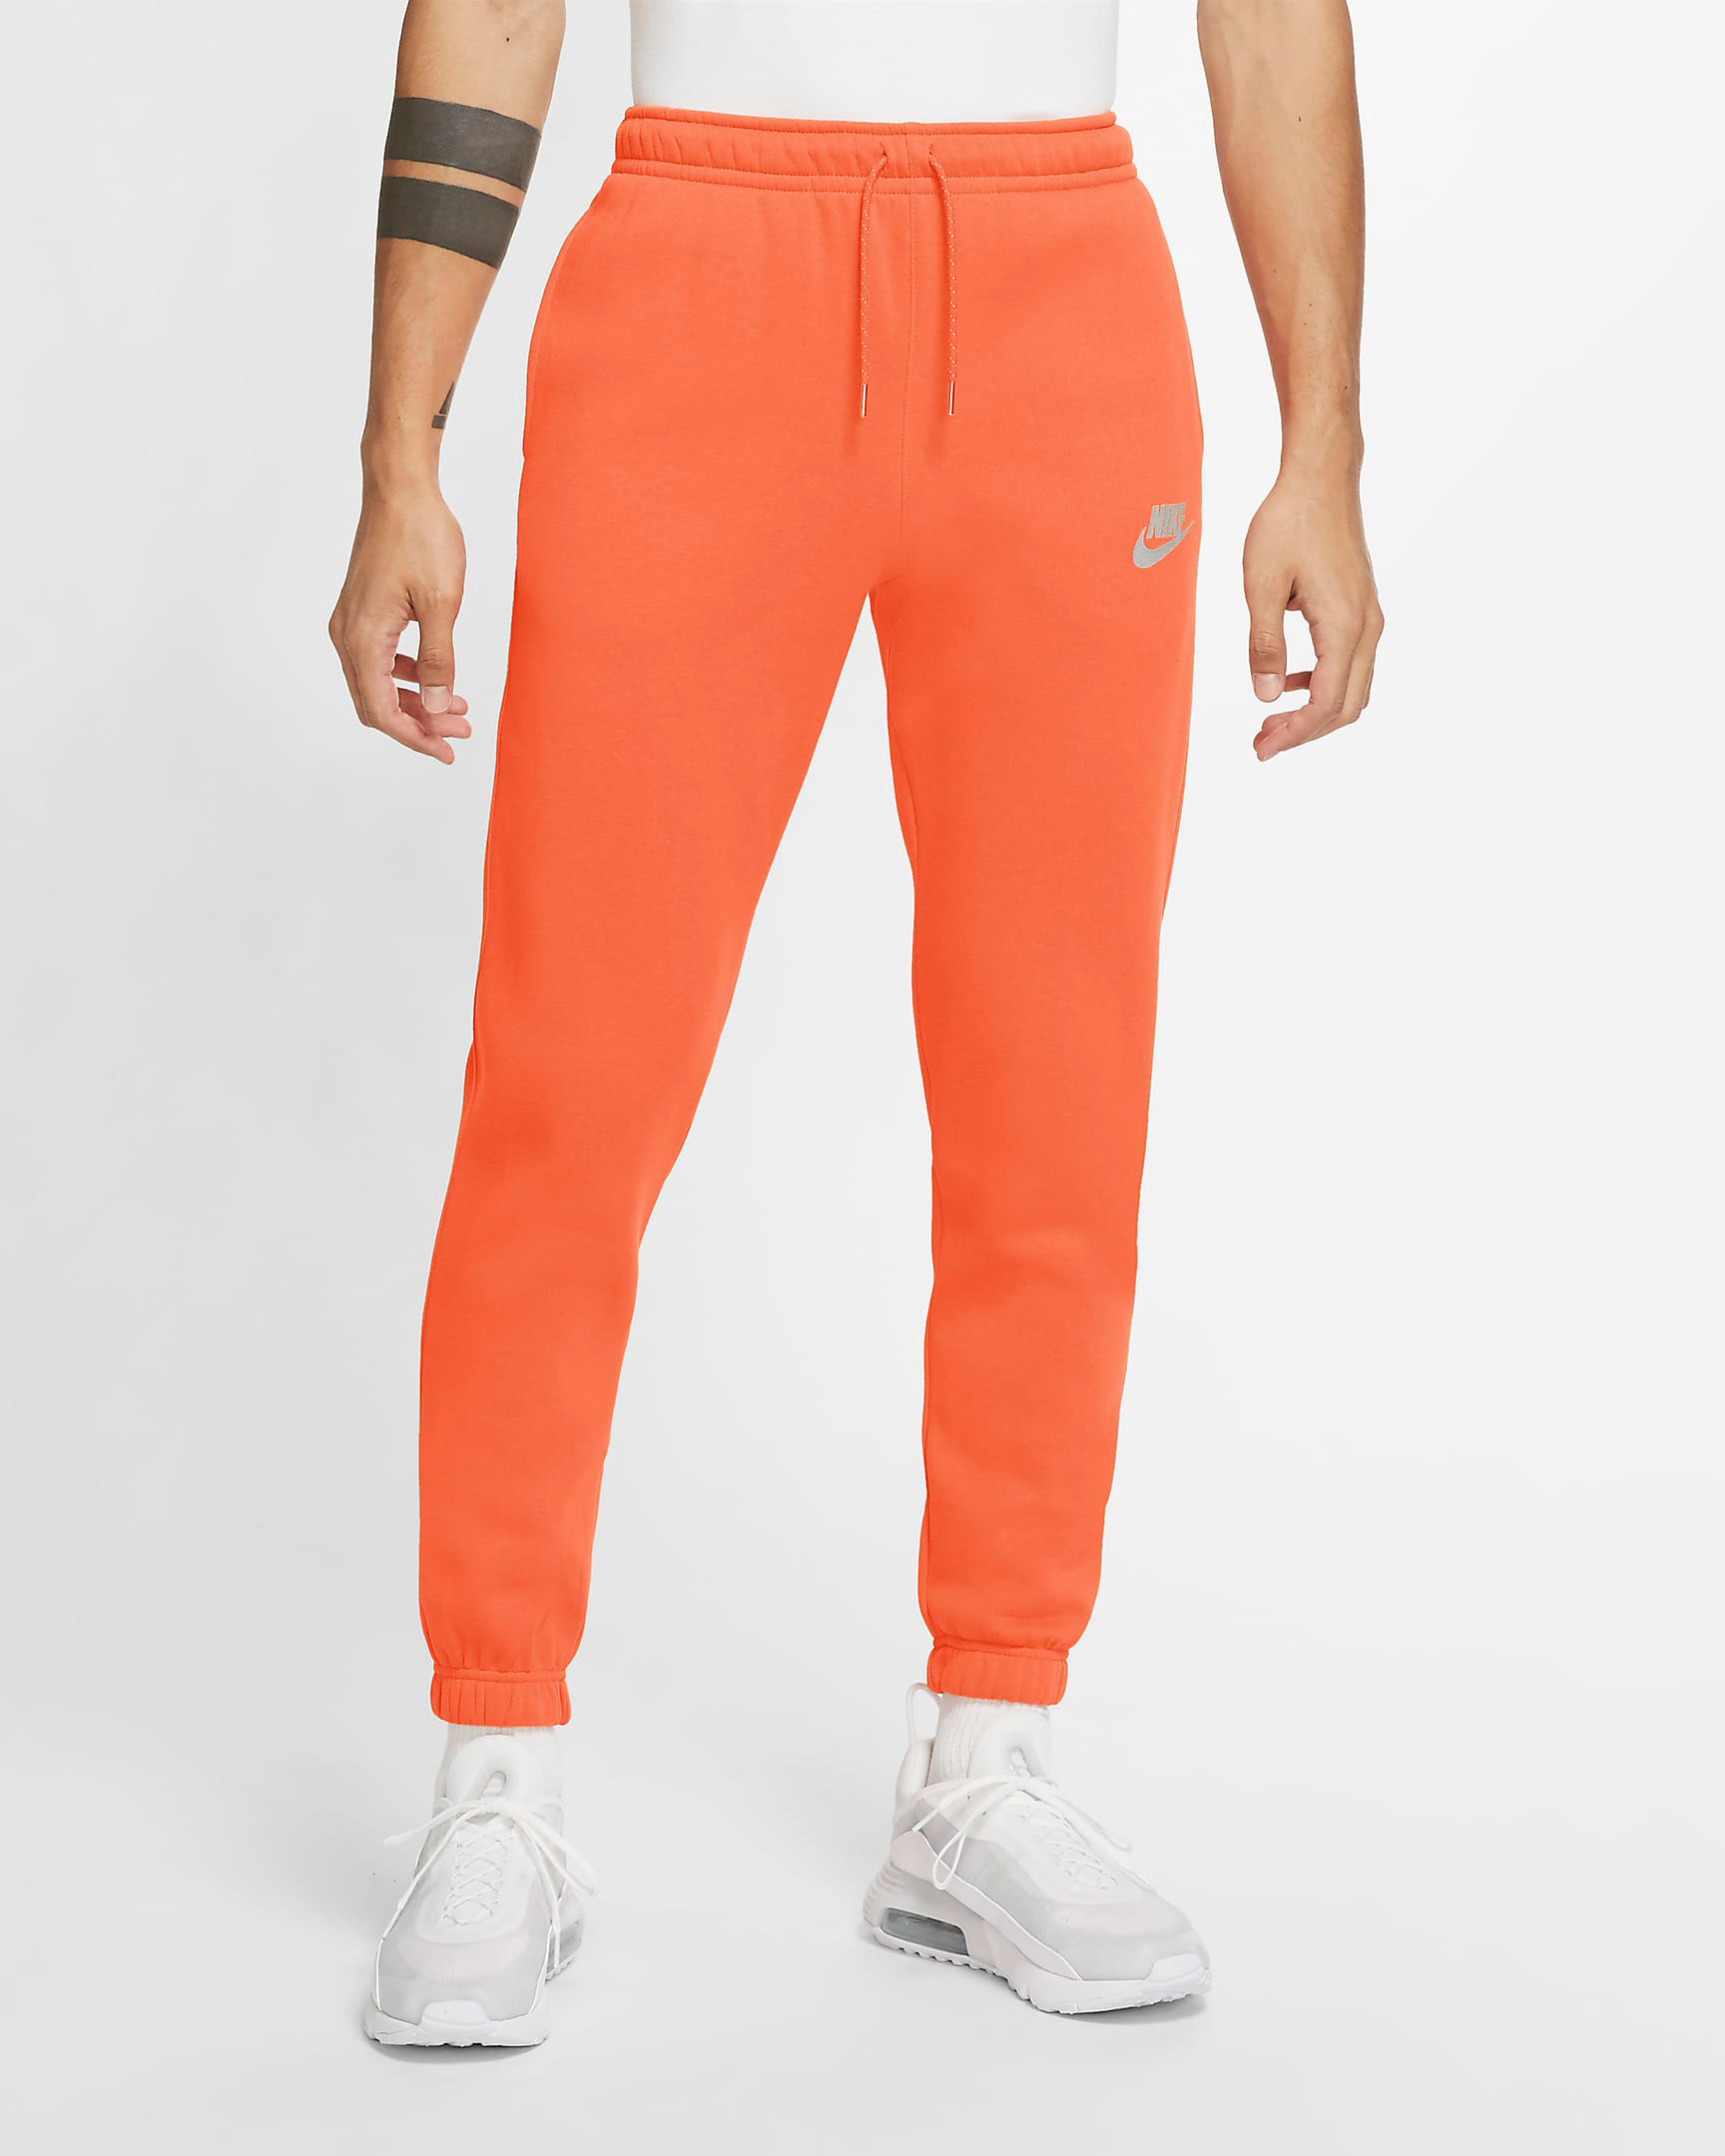 nike-sportswear-club-fleece-orange-reflective-jogger-pants